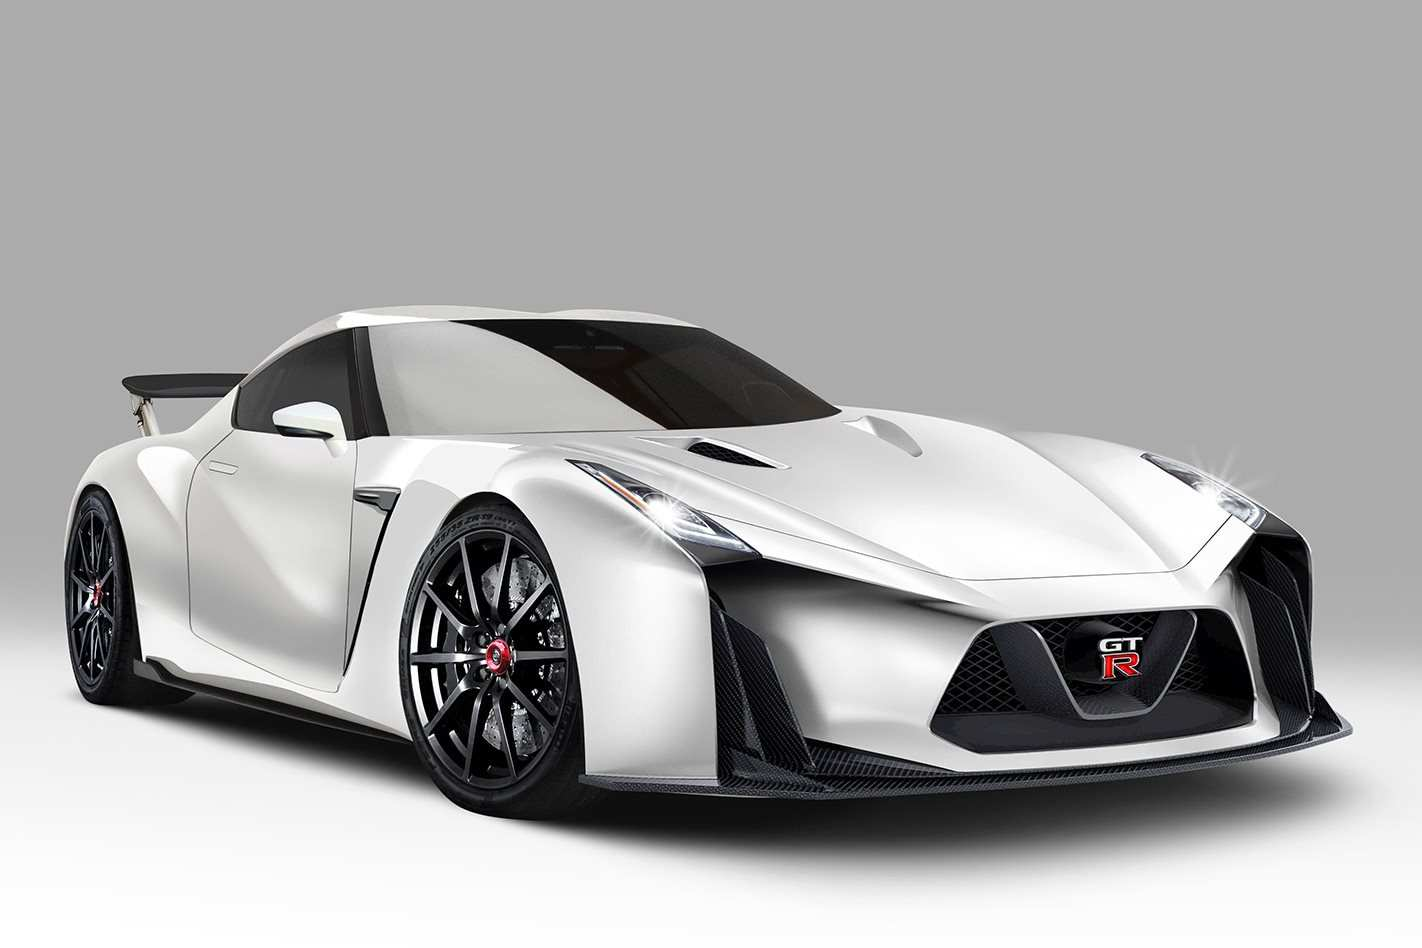 93 All New Nissan Gt R 36 2020 Price Engine